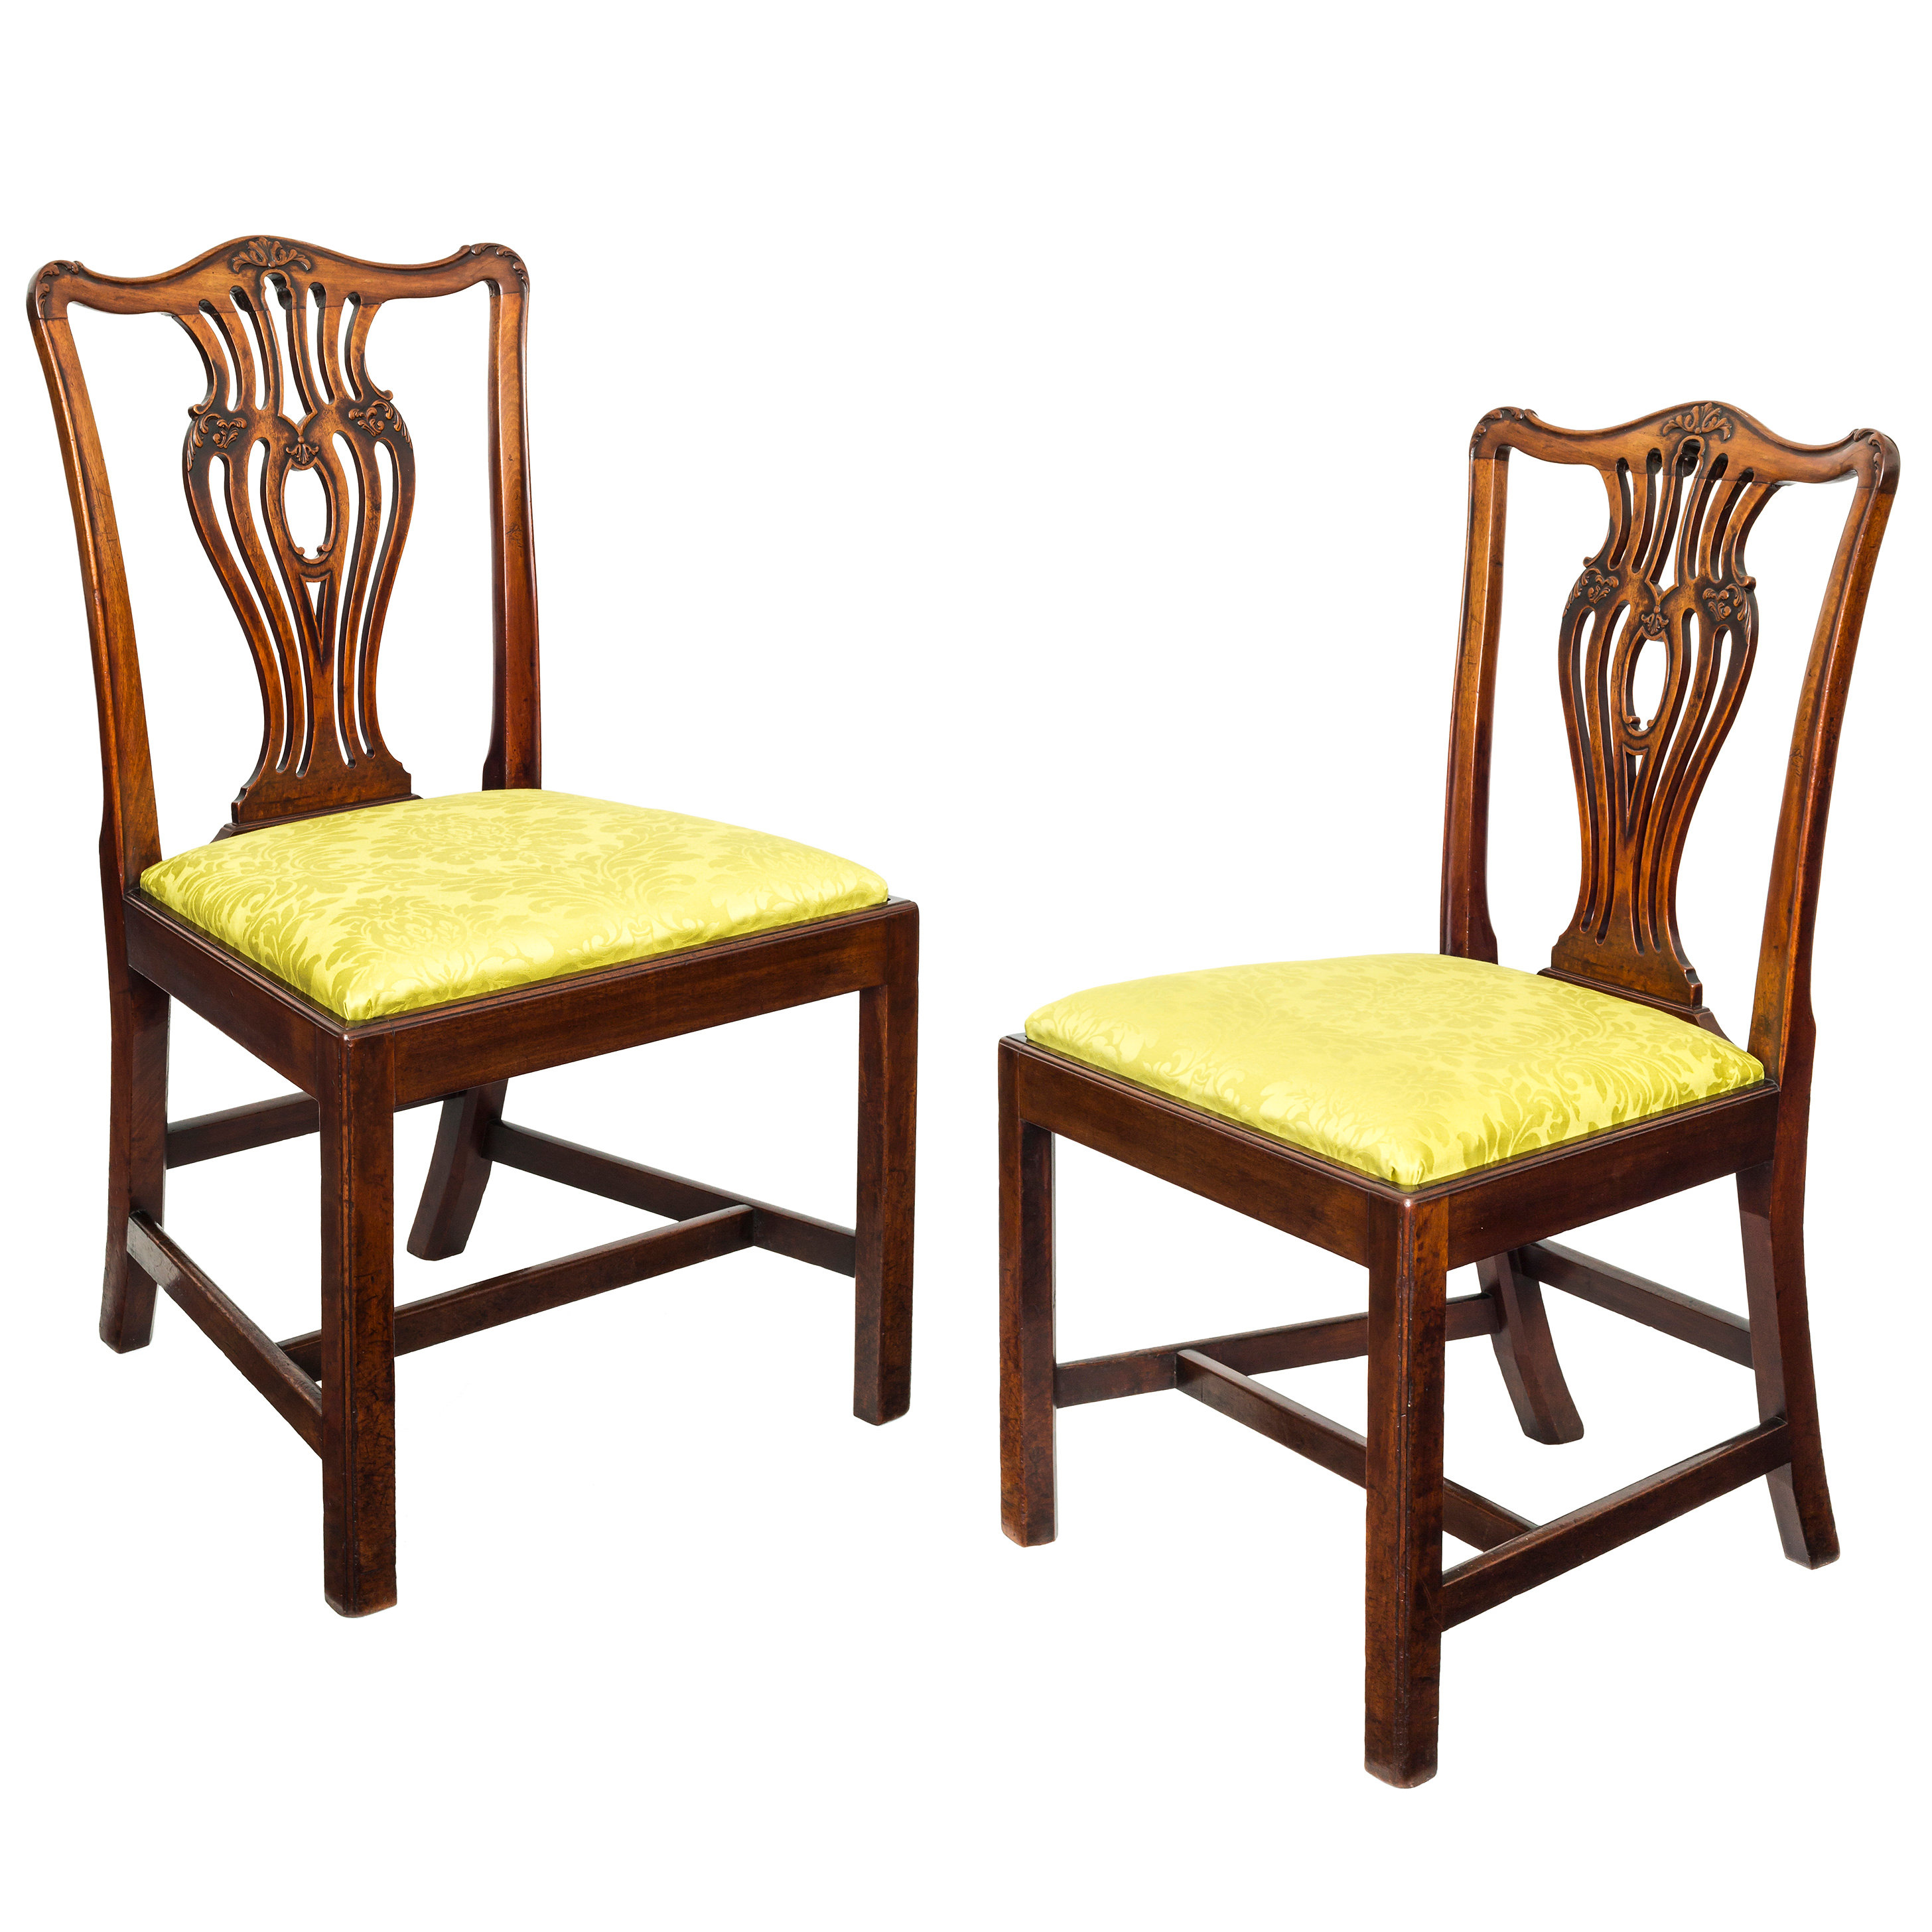 Antique Chairs line Gallery